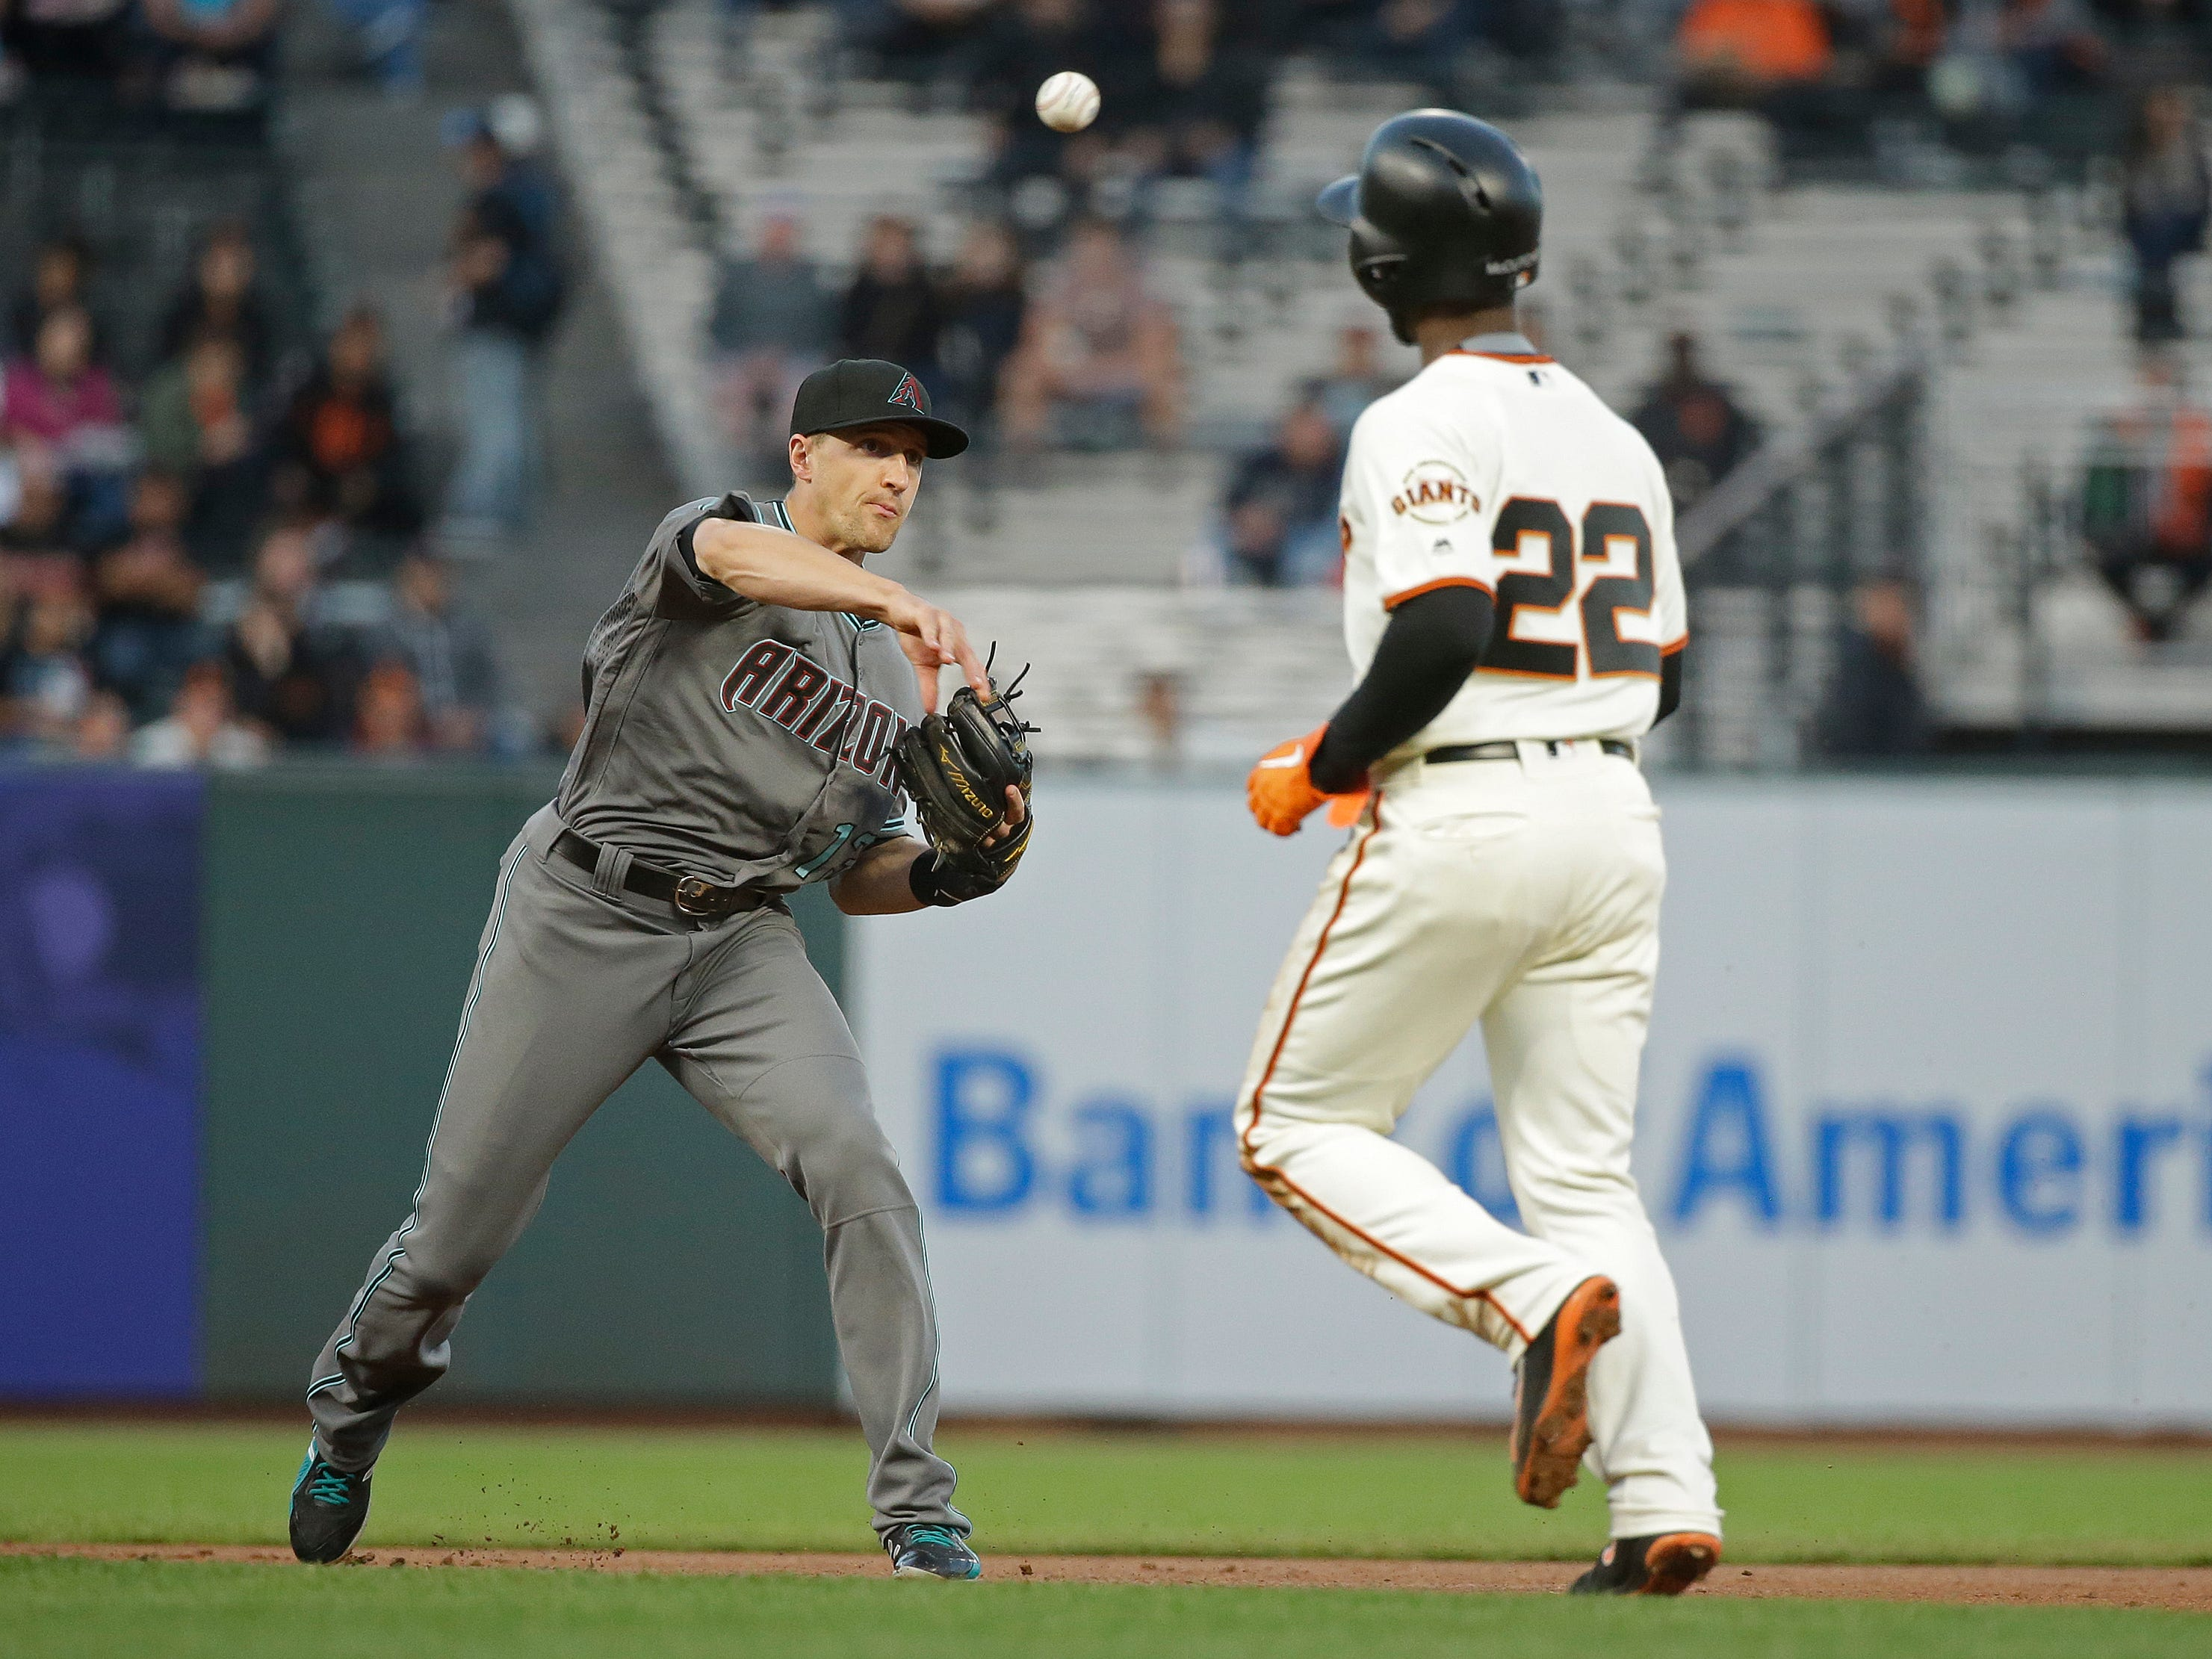 Arizona Diamondbacks shortstop Nick Ahmed turns a double play as San Francisco Giants' Andrew McCutchen runs to second base in the first inning of a baseball game Tuesday, Aug. 28, 2018, in San Francisco.